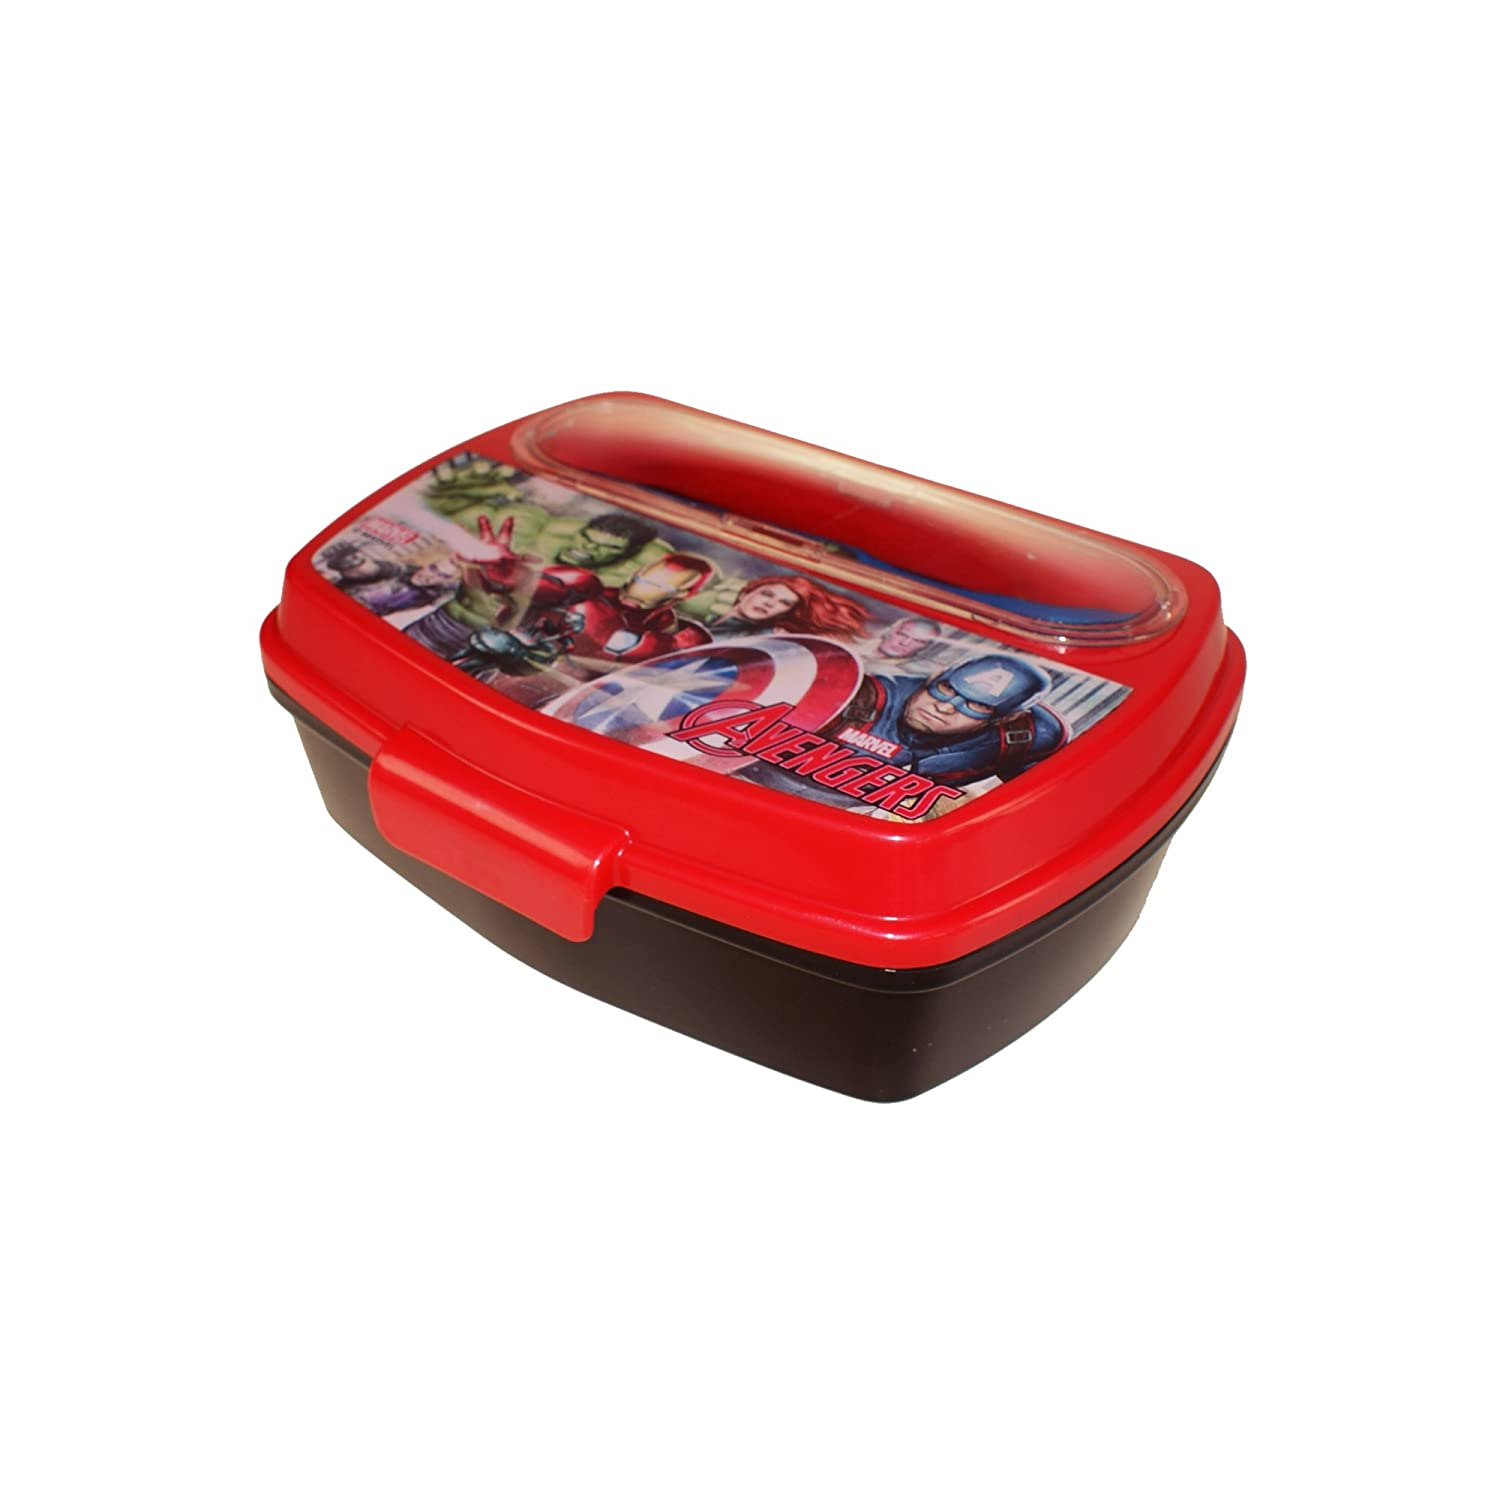 Boyz Toys ST437 Sandwich Box with Cutlery - Avengers, Multi Boys Toys 87709